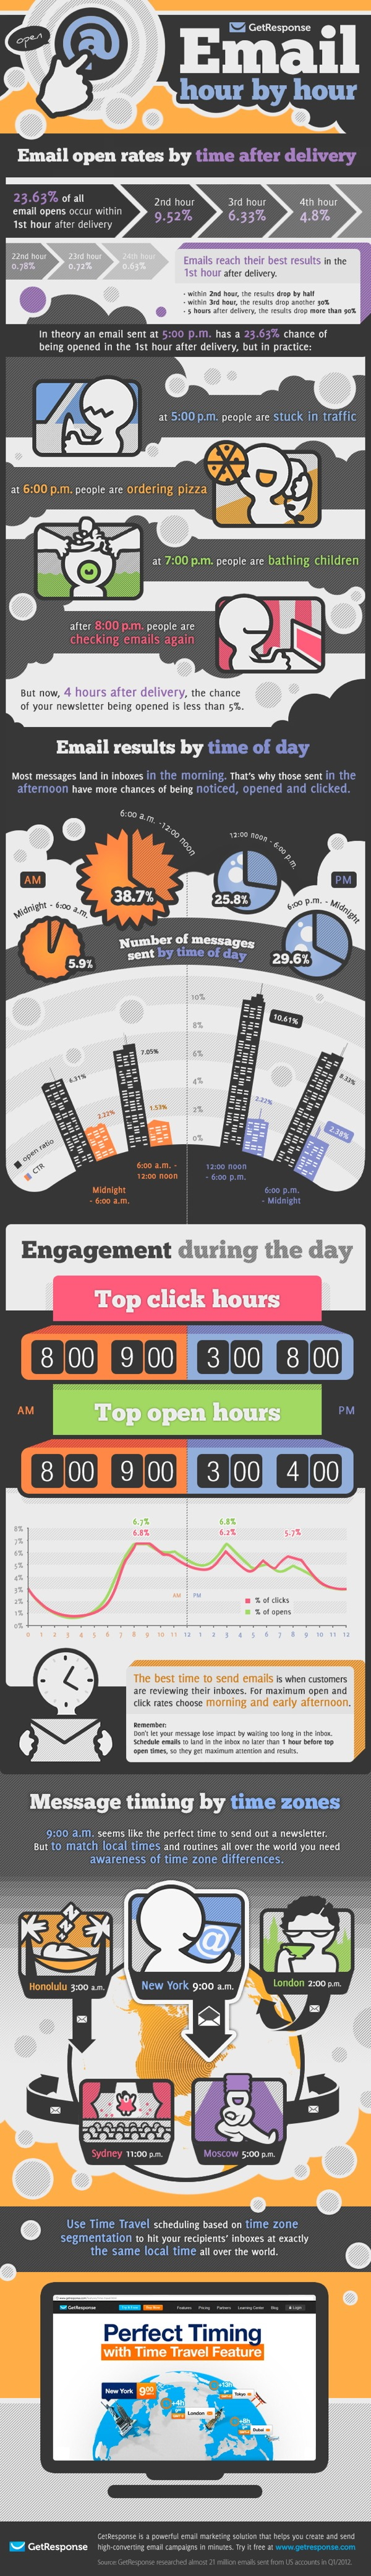 Best_time_to_send_email infographic